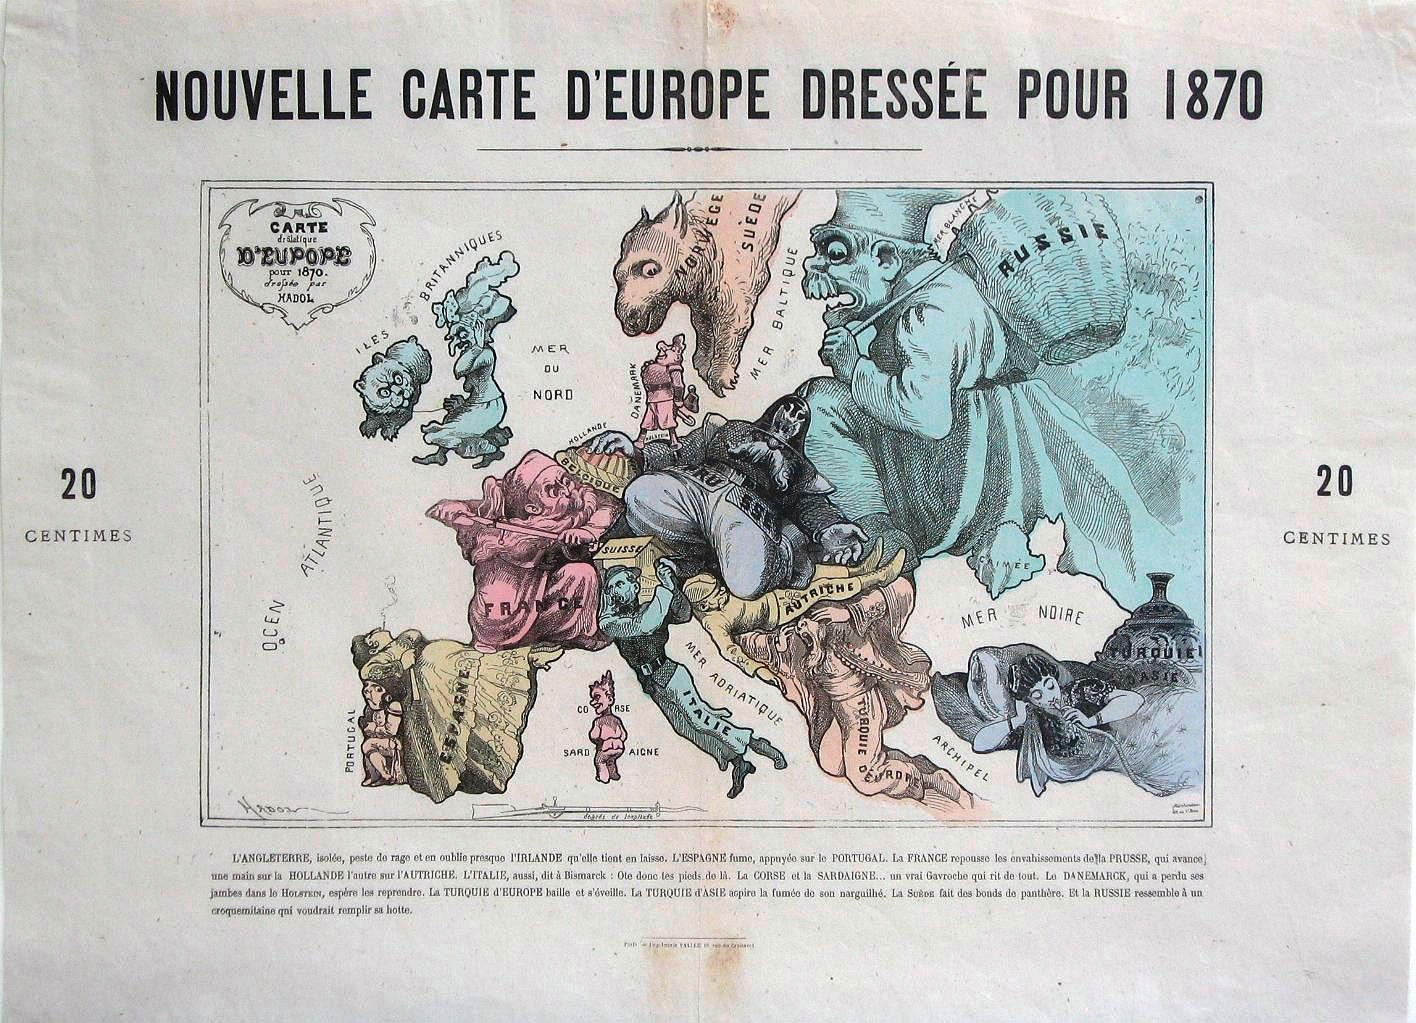 Paul Hadol, Nouvelle Carte d'Europe dressée pour 1870, Paris, France, 1870.